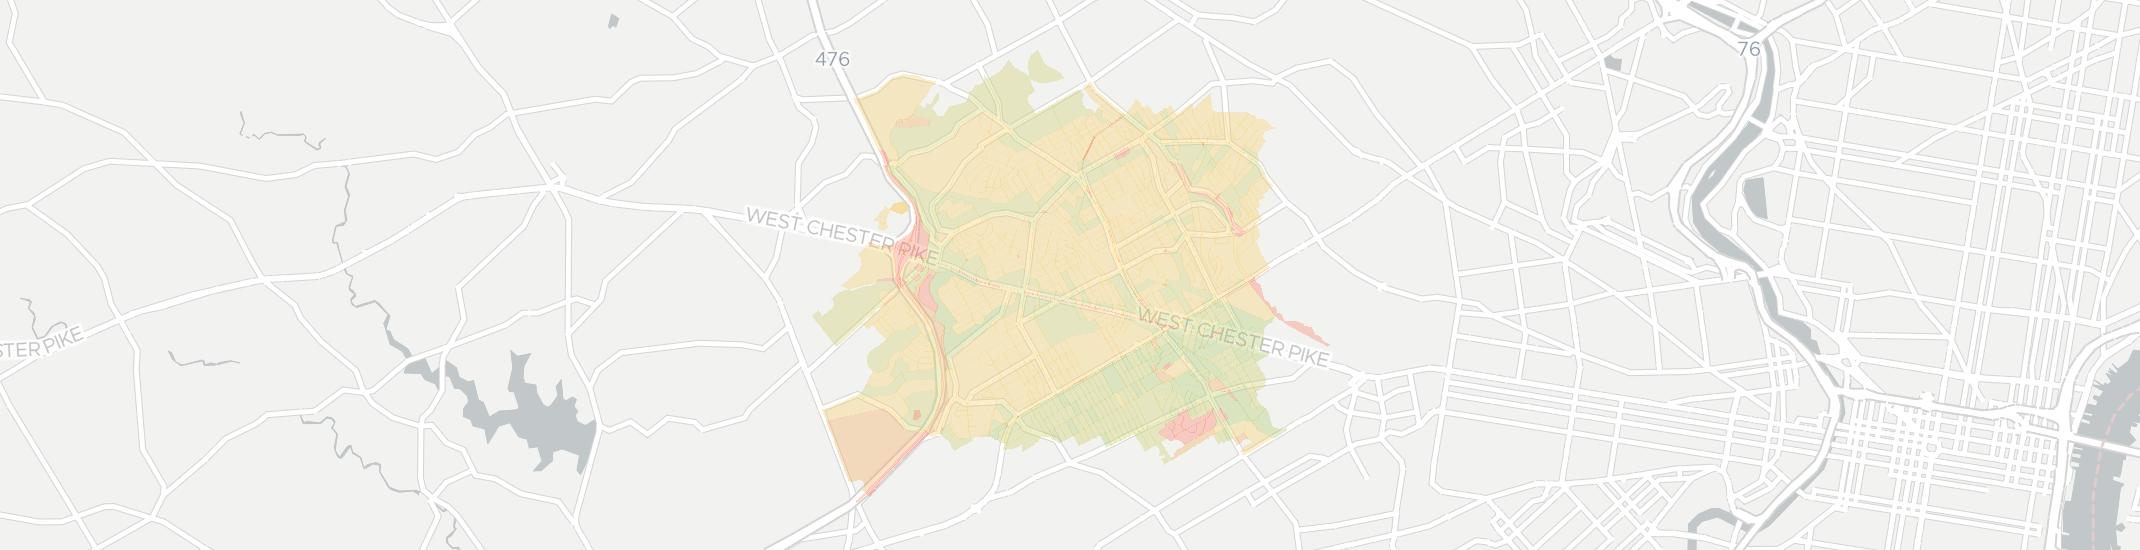 Havertown Internet Competition Map. Click for interactive map.